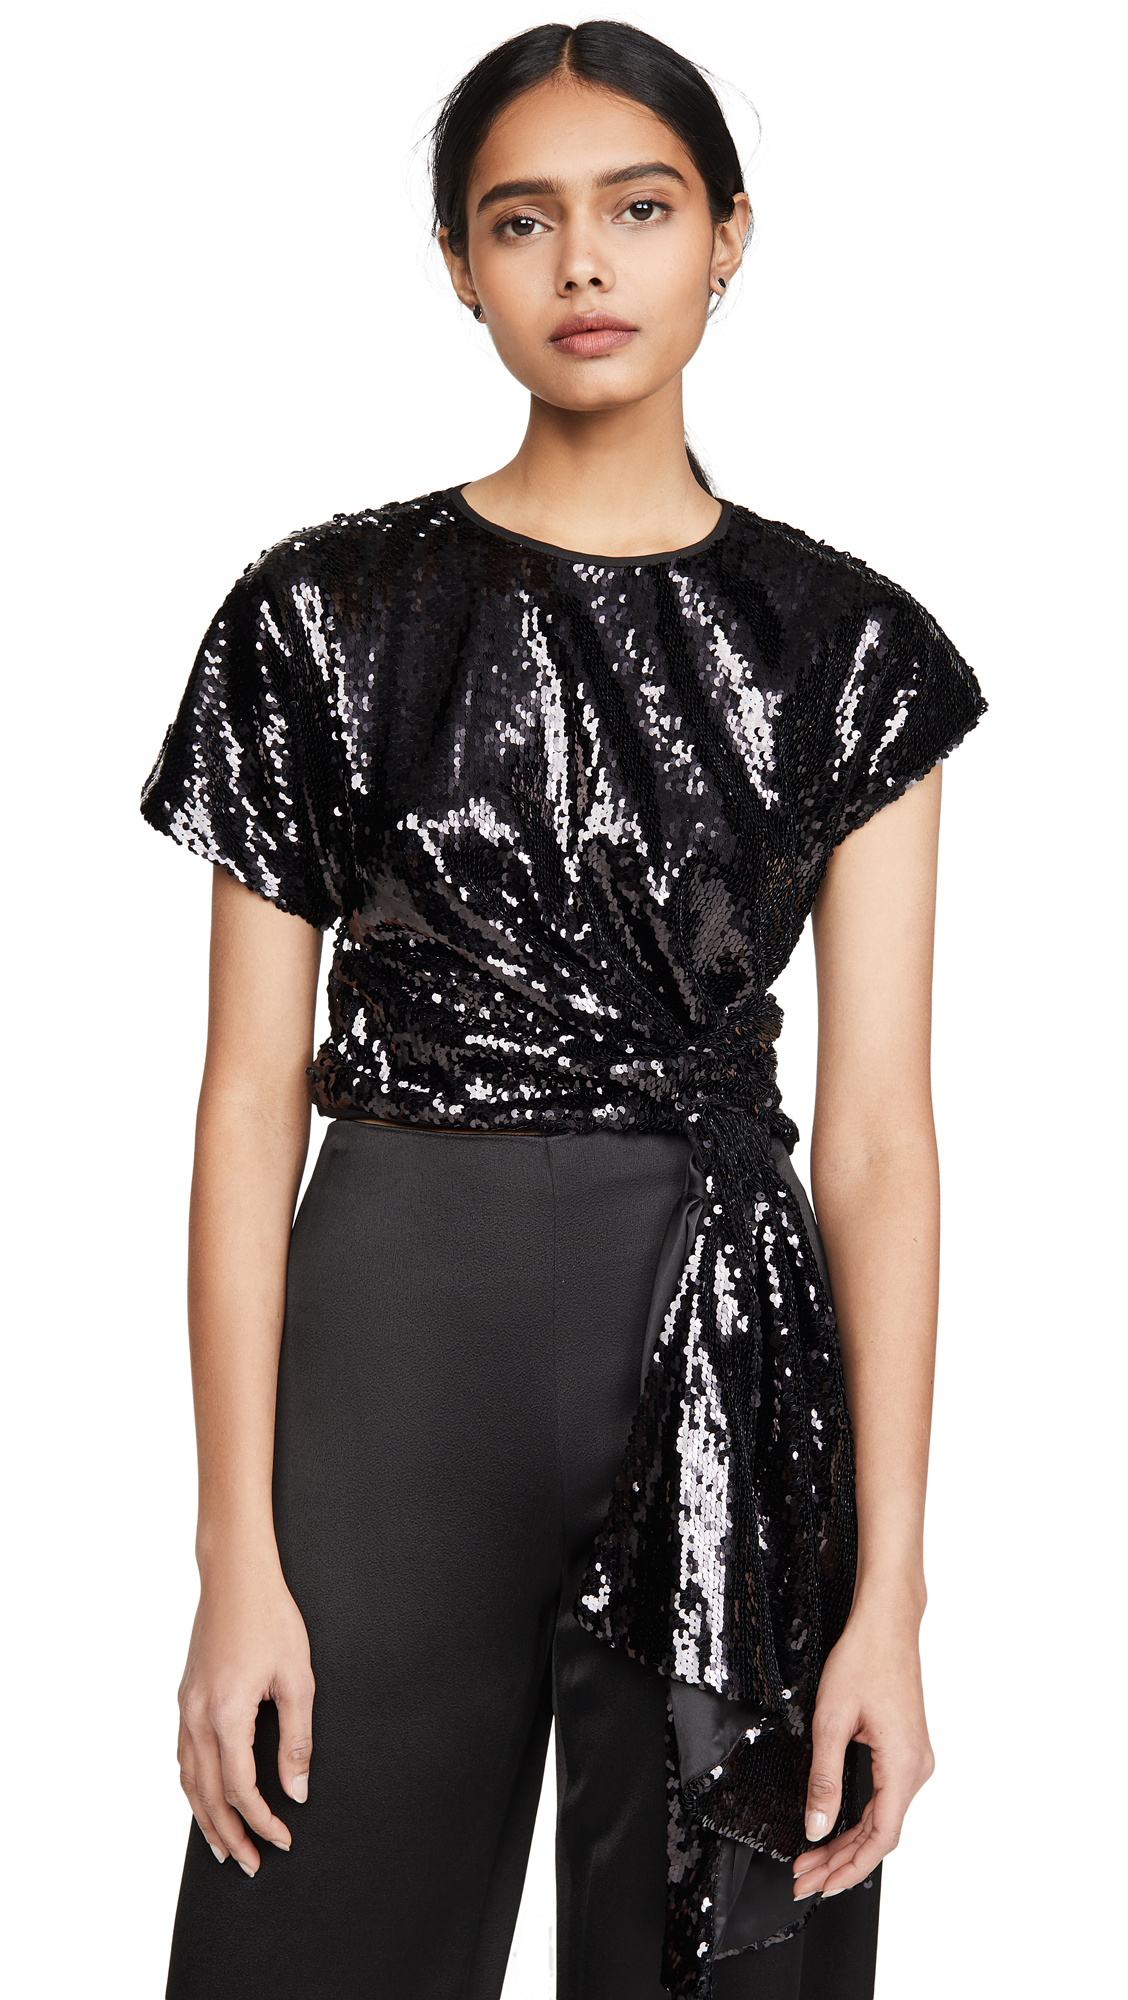 Alice McCall Electric Orchid Sequined Top - 50% Off Sale